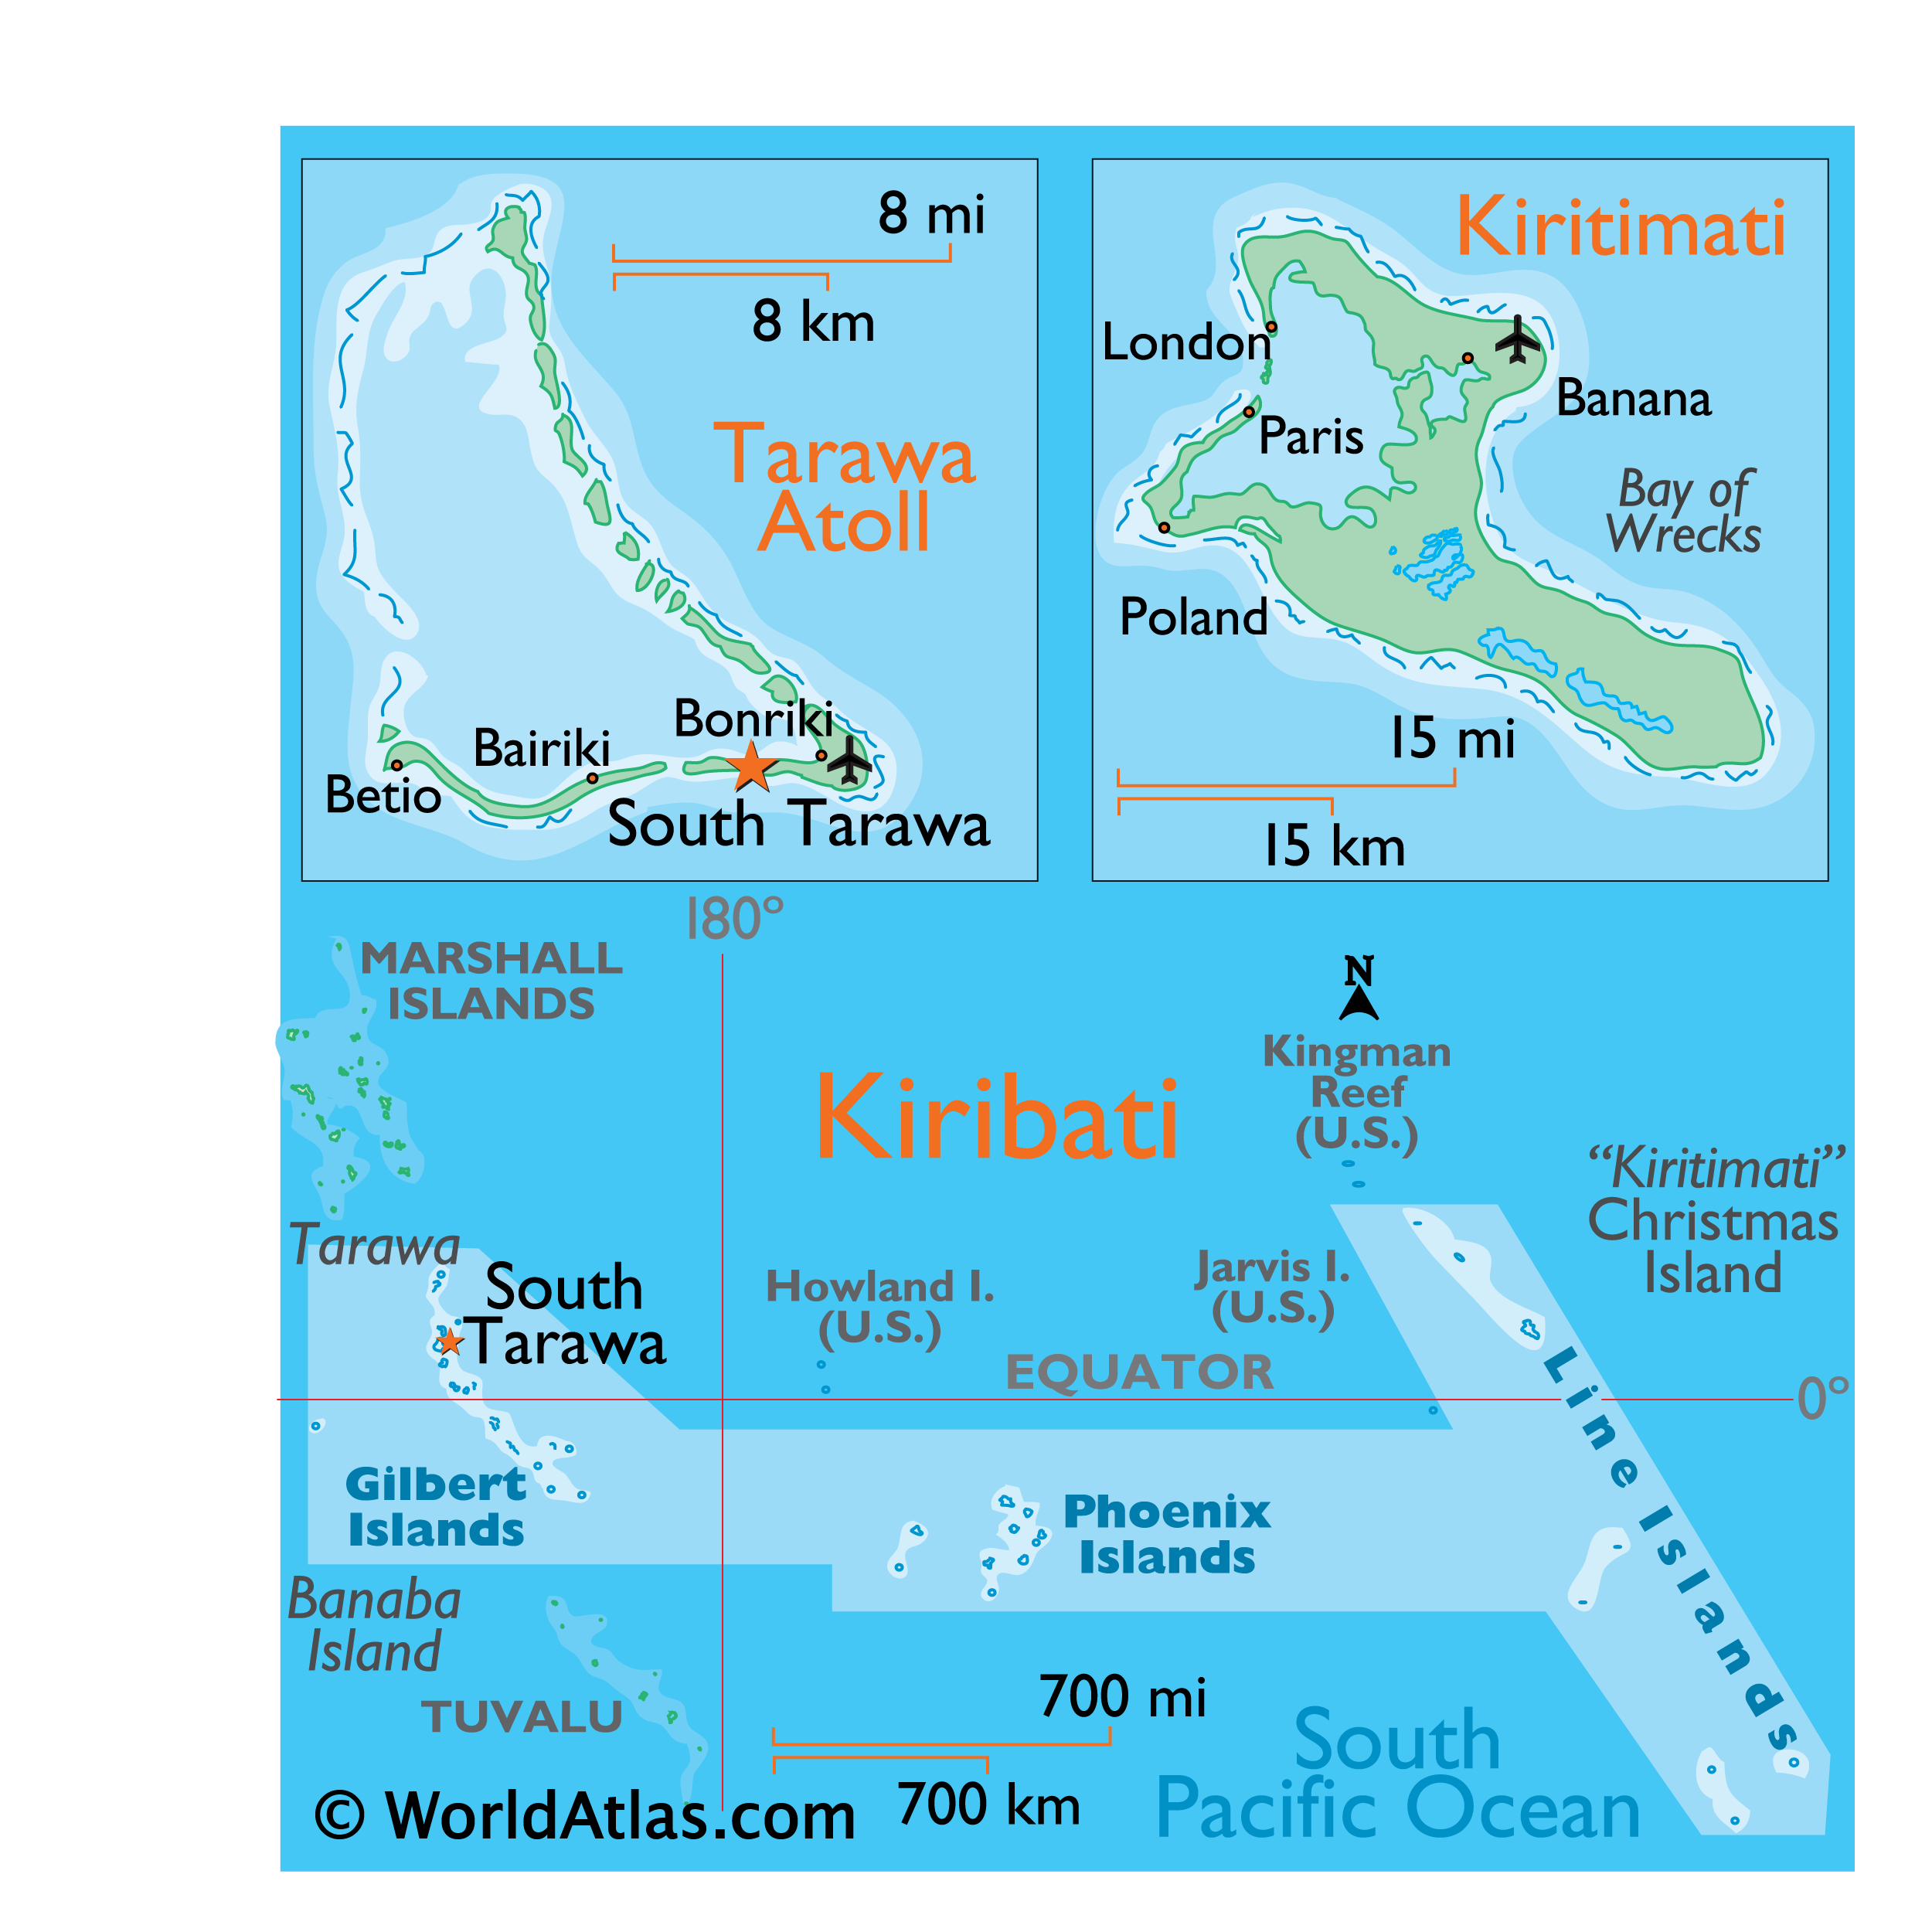 Physical Map of Kiribati showing major islands groups and islands.